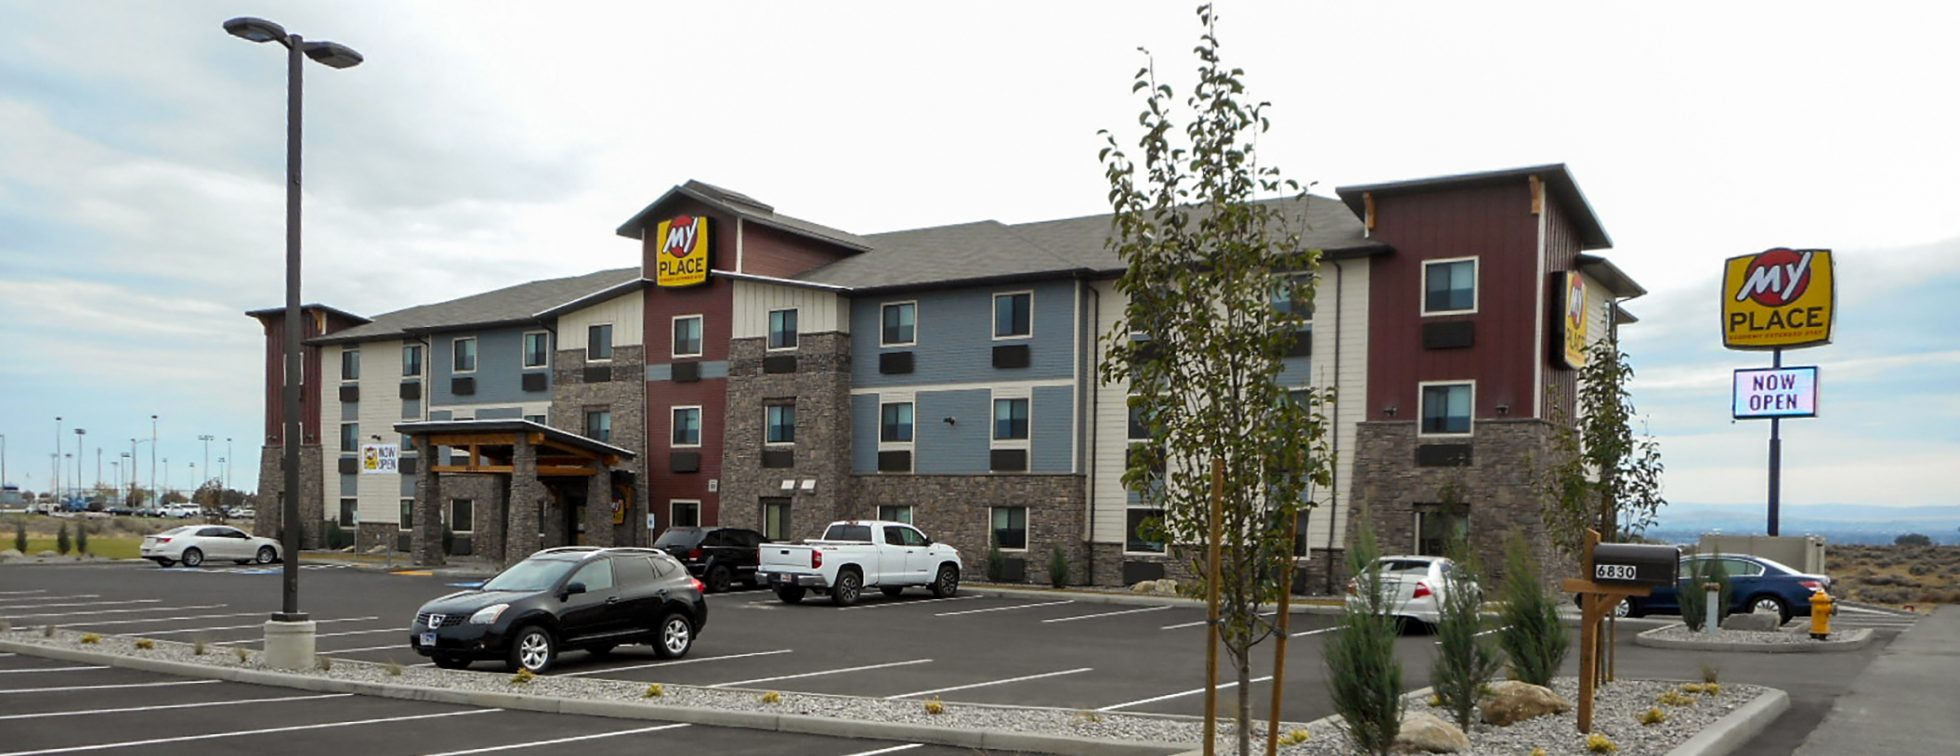 Extended Stay Hotels Lebanon Tn